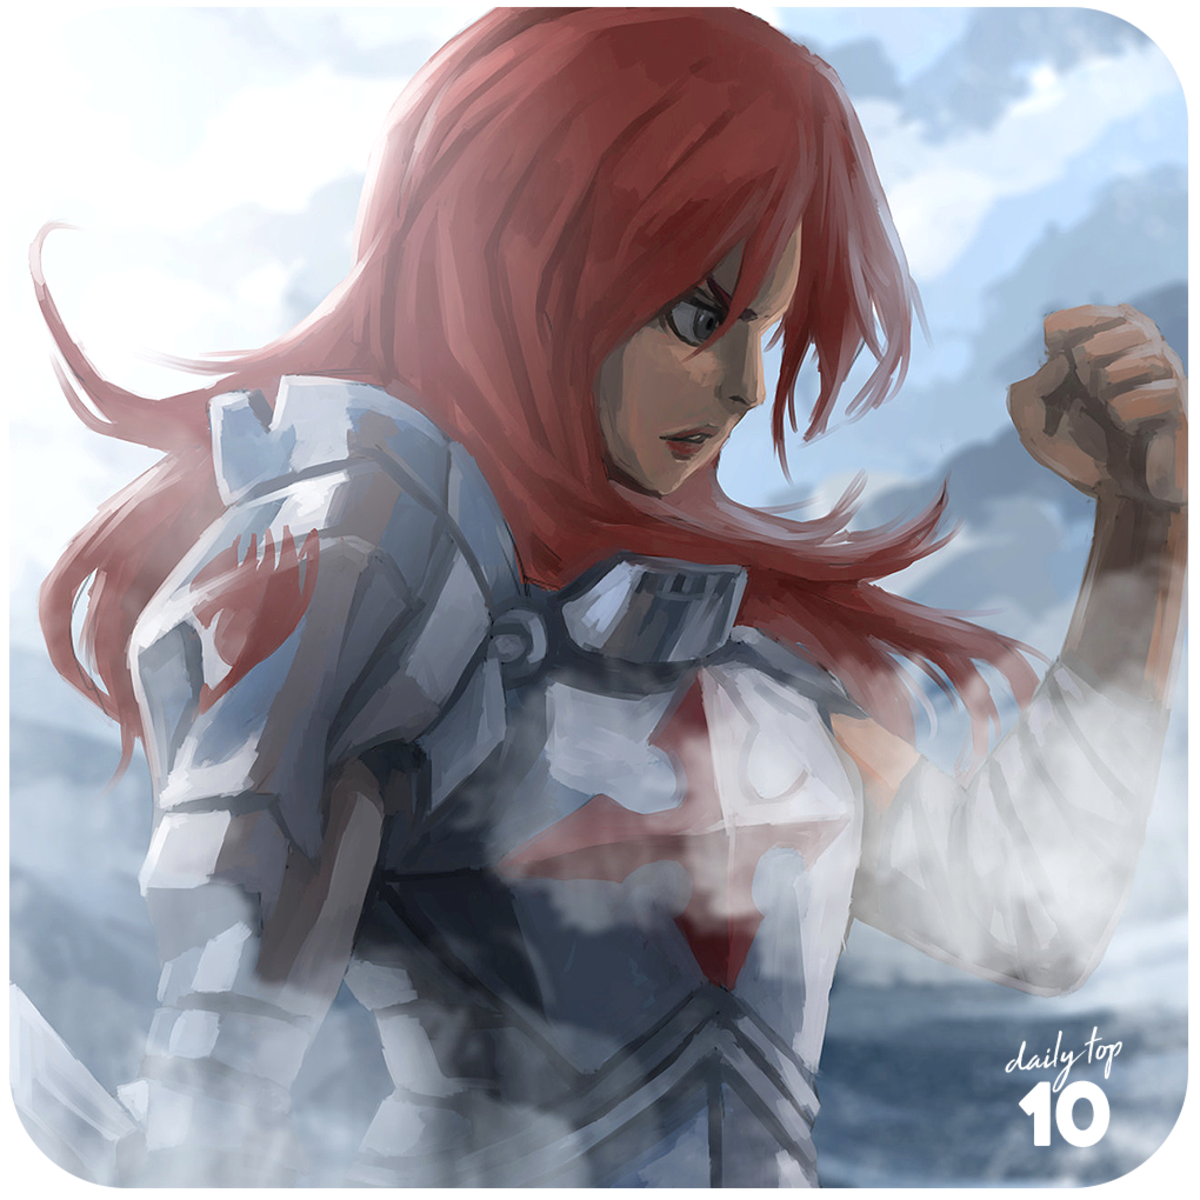 Erza Scarlet pastel color fan art.